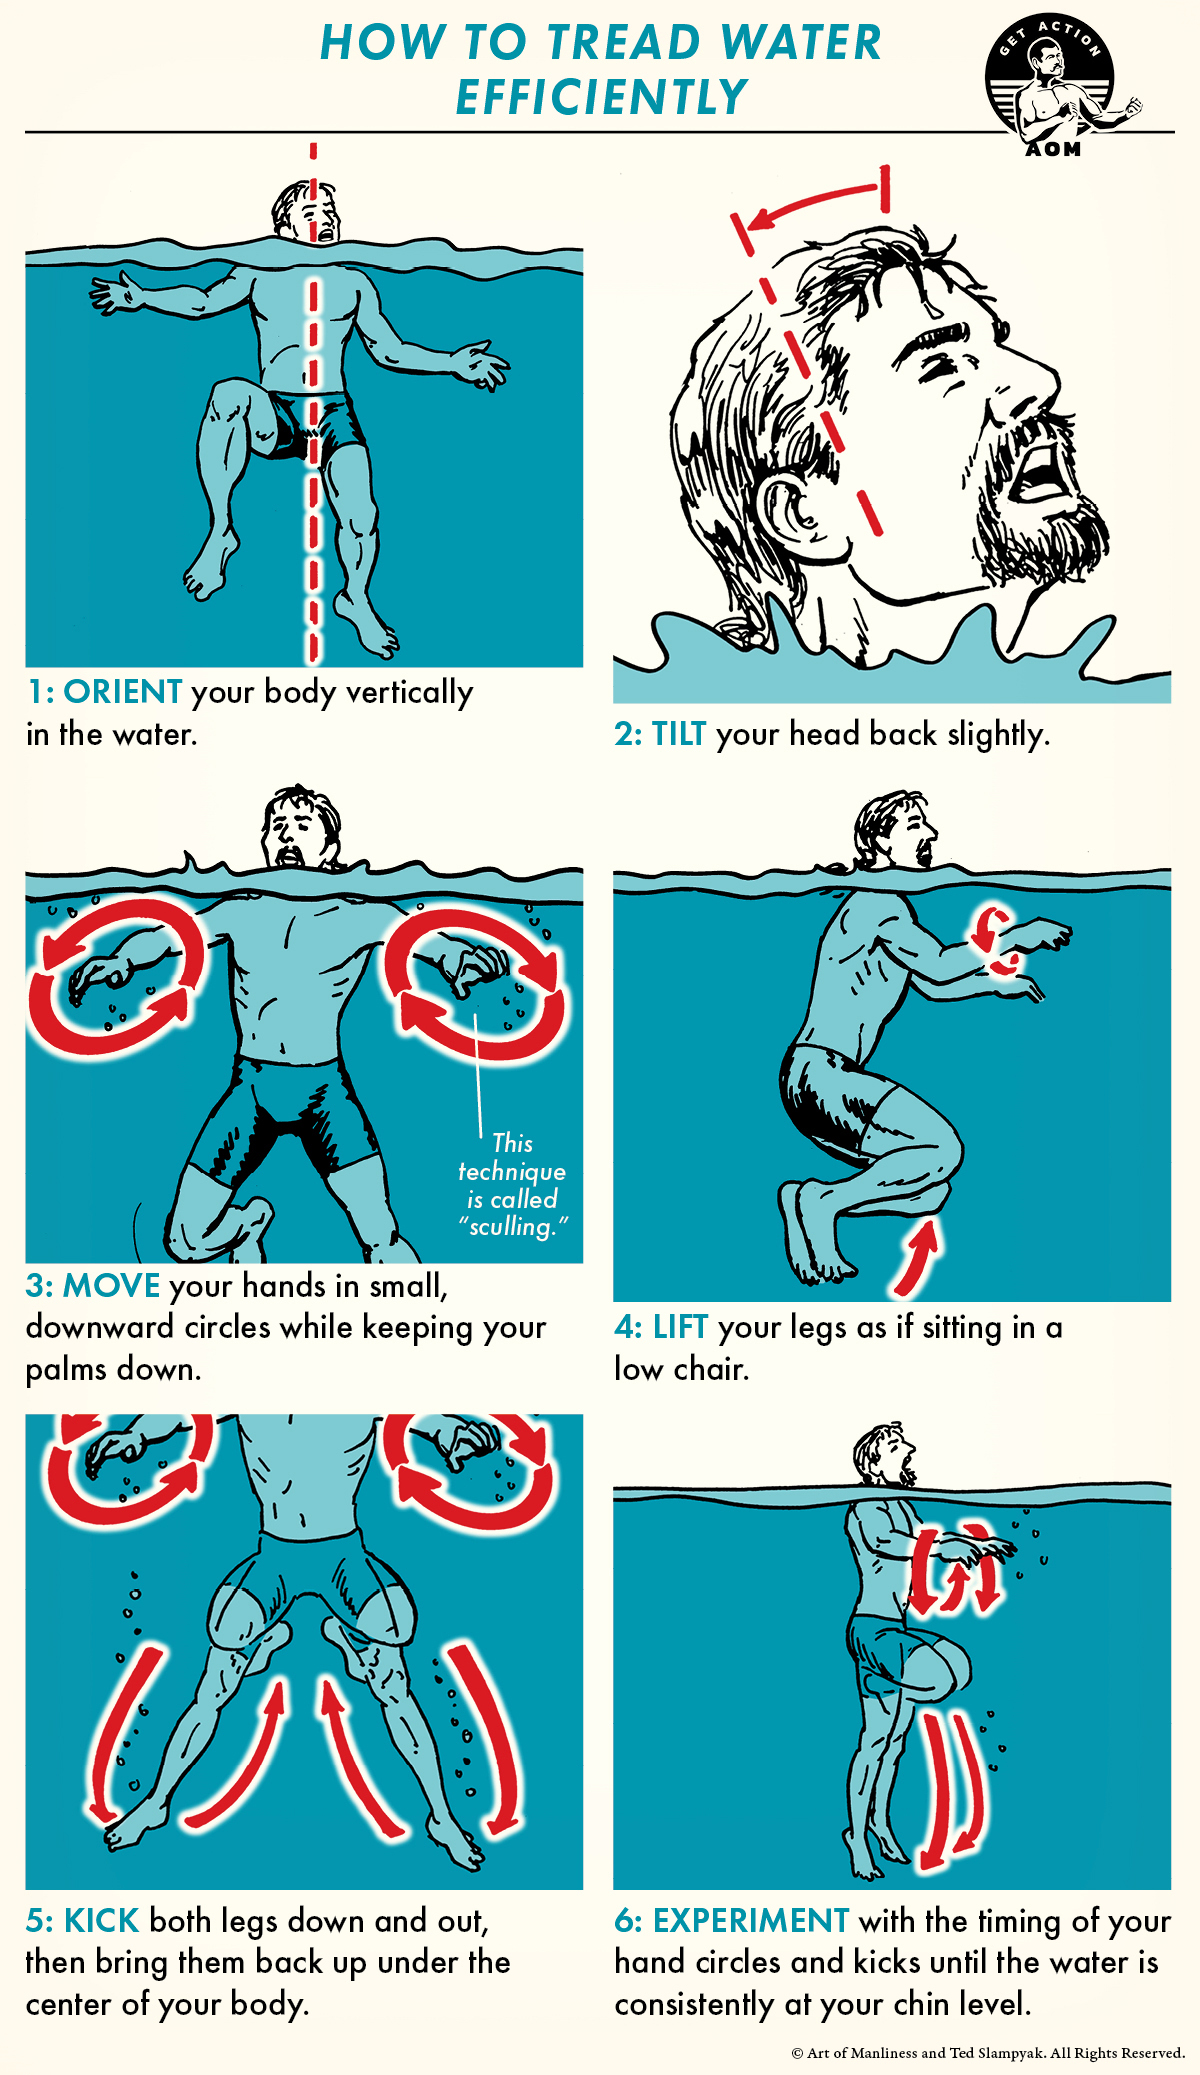 How to tread water correctly and efficiently comic guide.